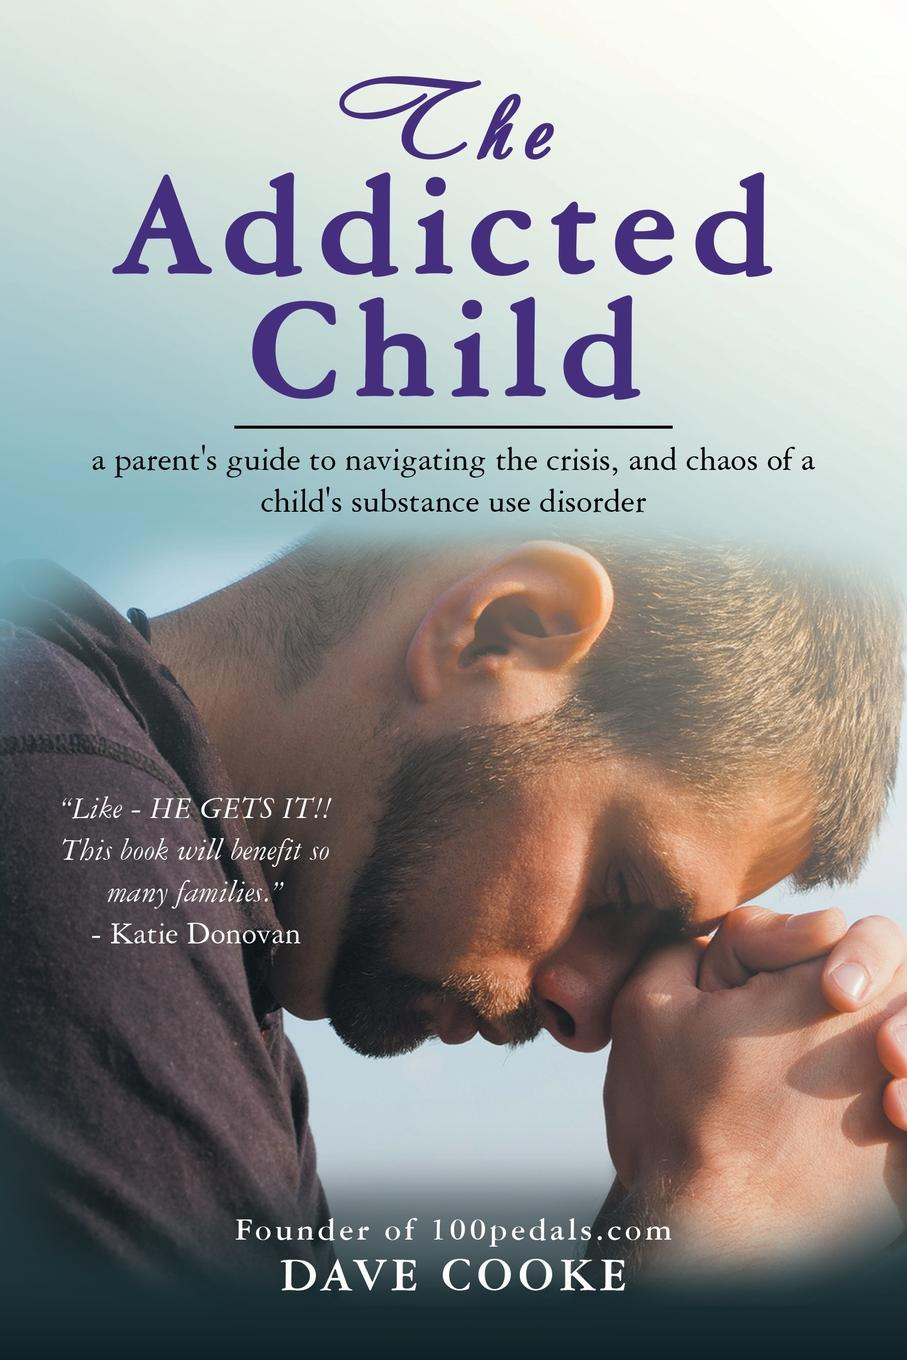 Dave Cooke The Addicted Child. A Parent.s Guide to Navigating the Crisis, and Chaos of a Child.s Substance Use Disorder